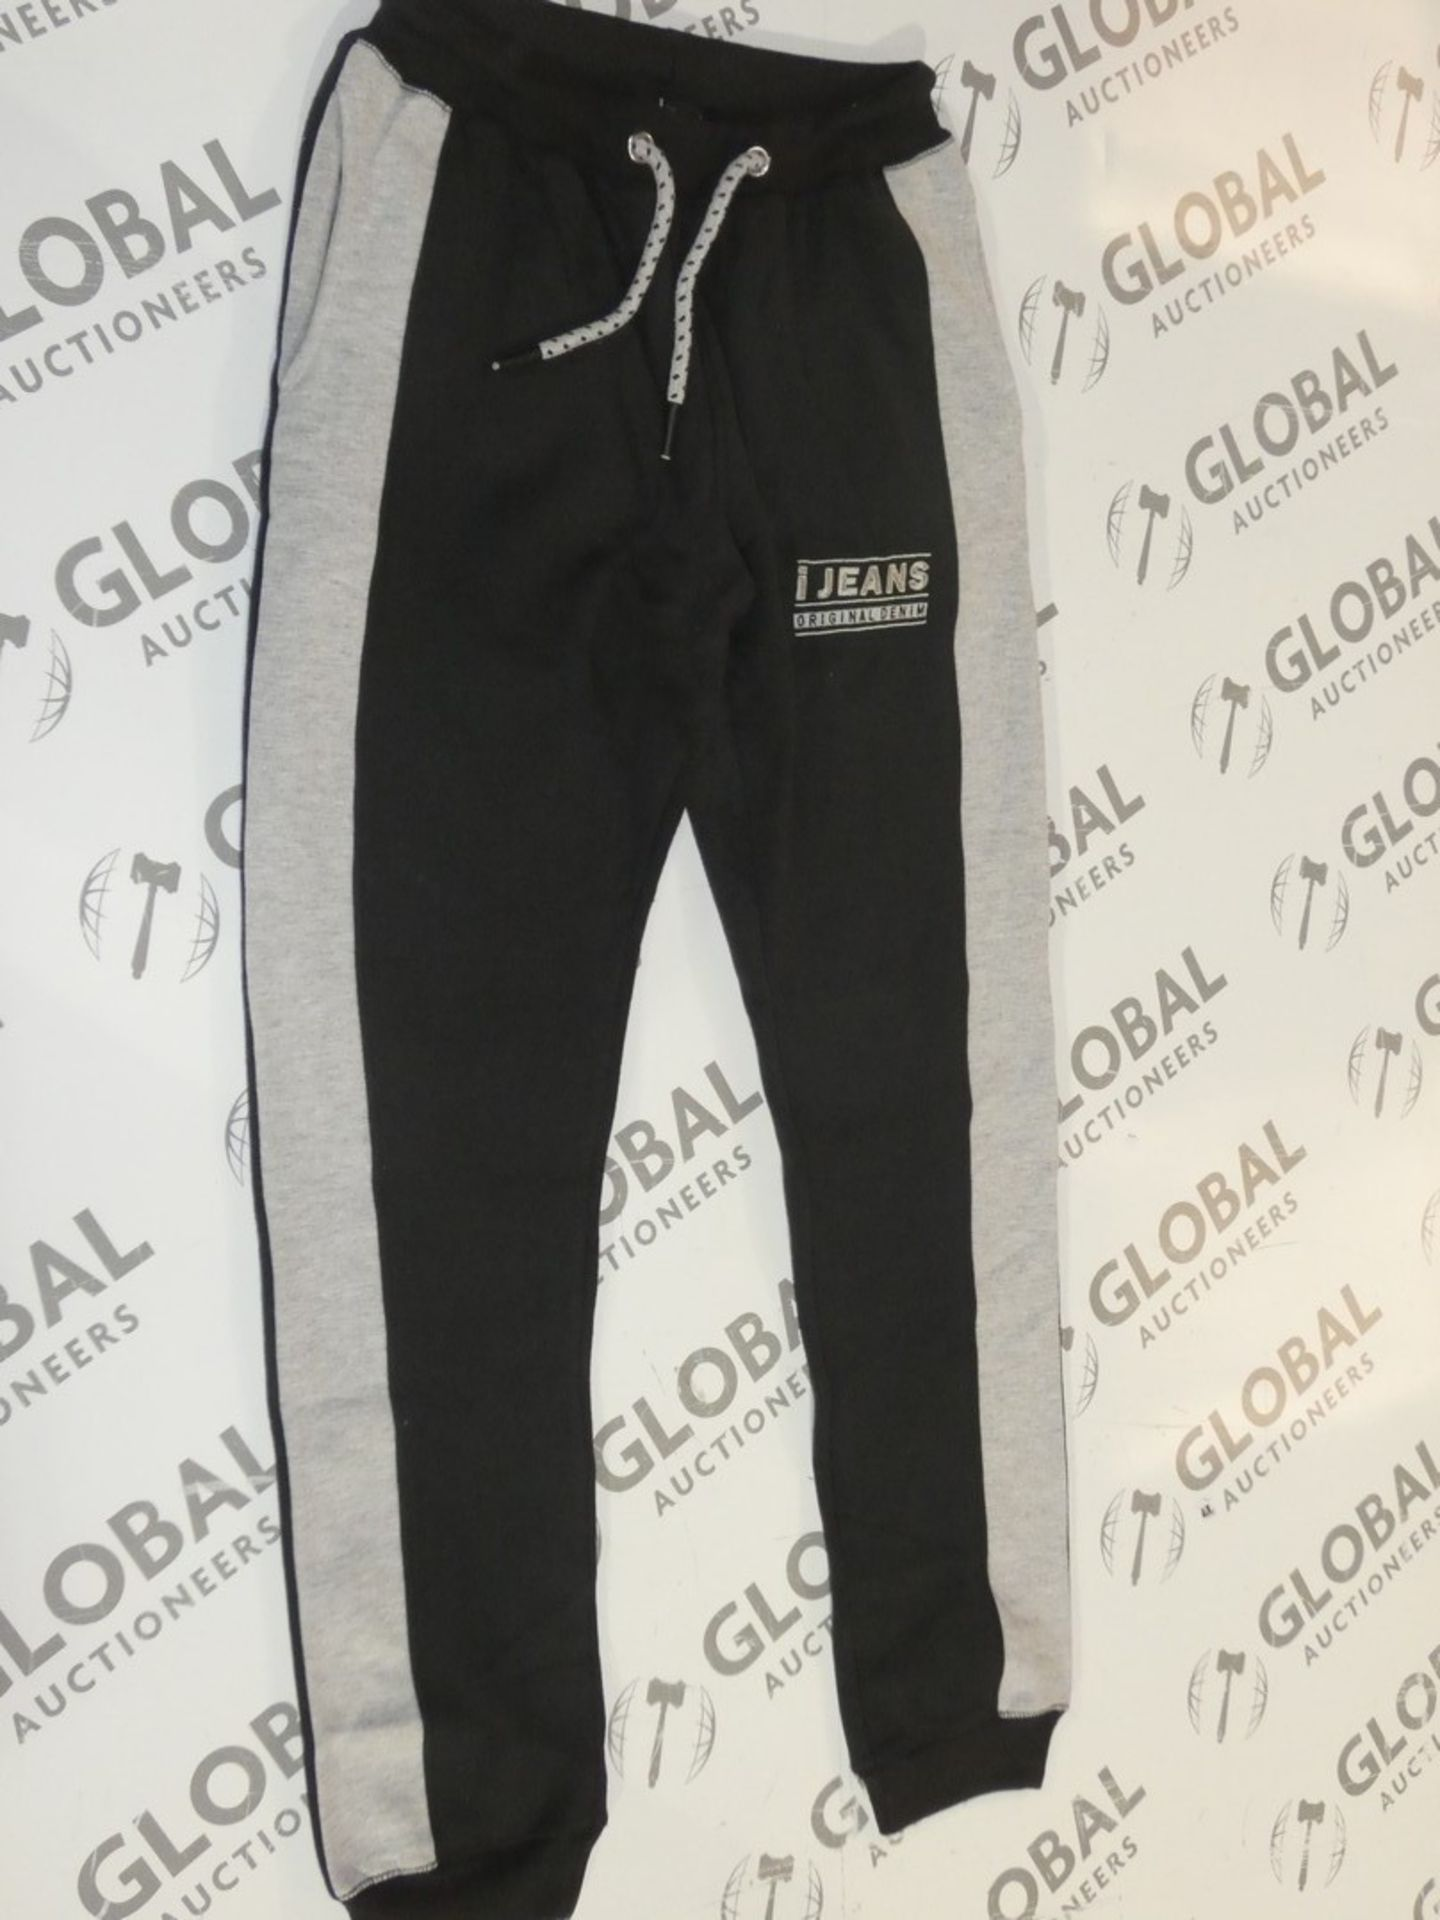 Lot 170 - Assorted Brand New Pairs Of Ijeans Original Denim Black Lounging Pants In Assorted Sizes RRP £25 A